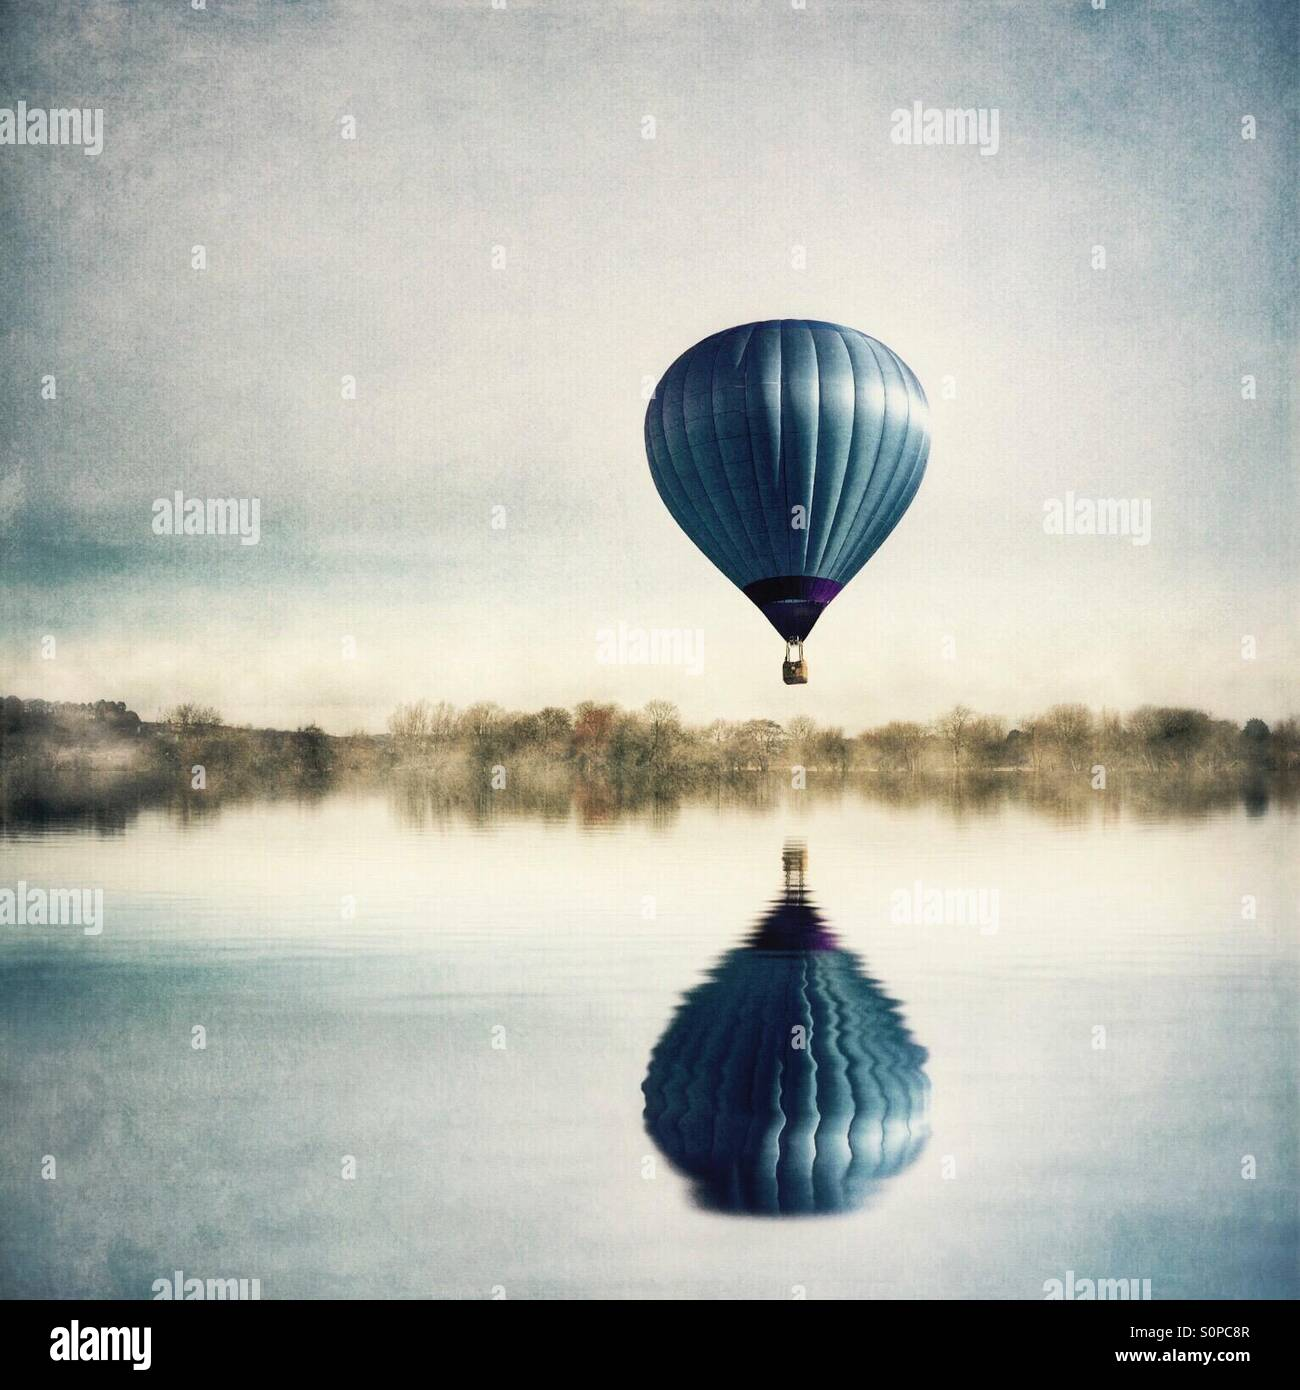 Reflection of hot air balloon in lake - Stock Image